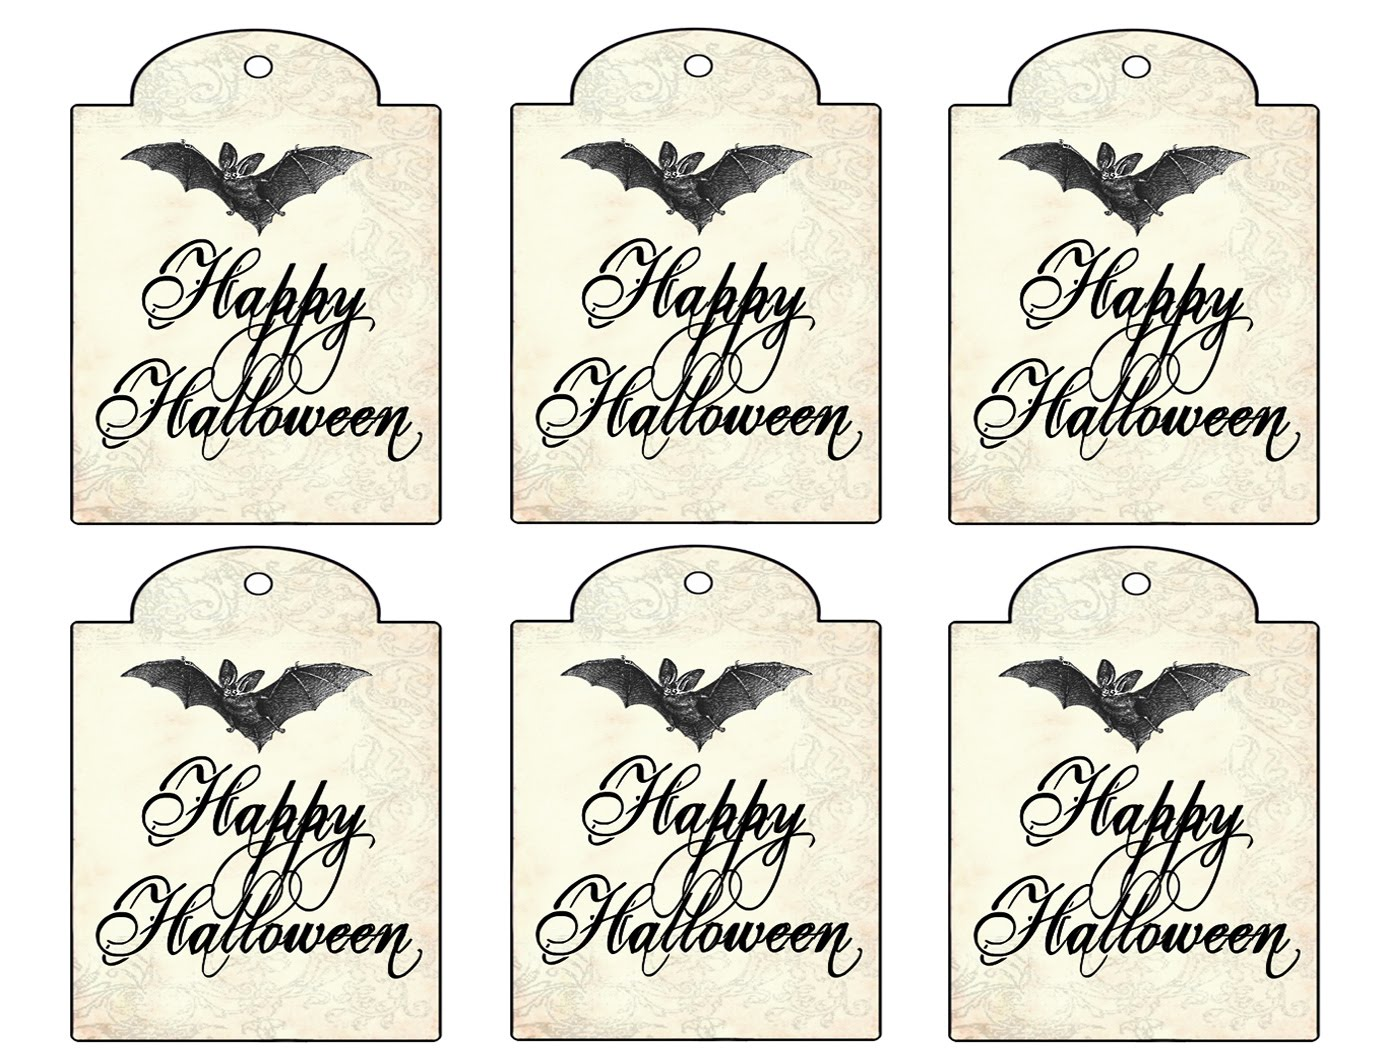 photograph regarding Printable Halloween Gift Tags identify 10 of the Great Halloween Present Tags for Oneself